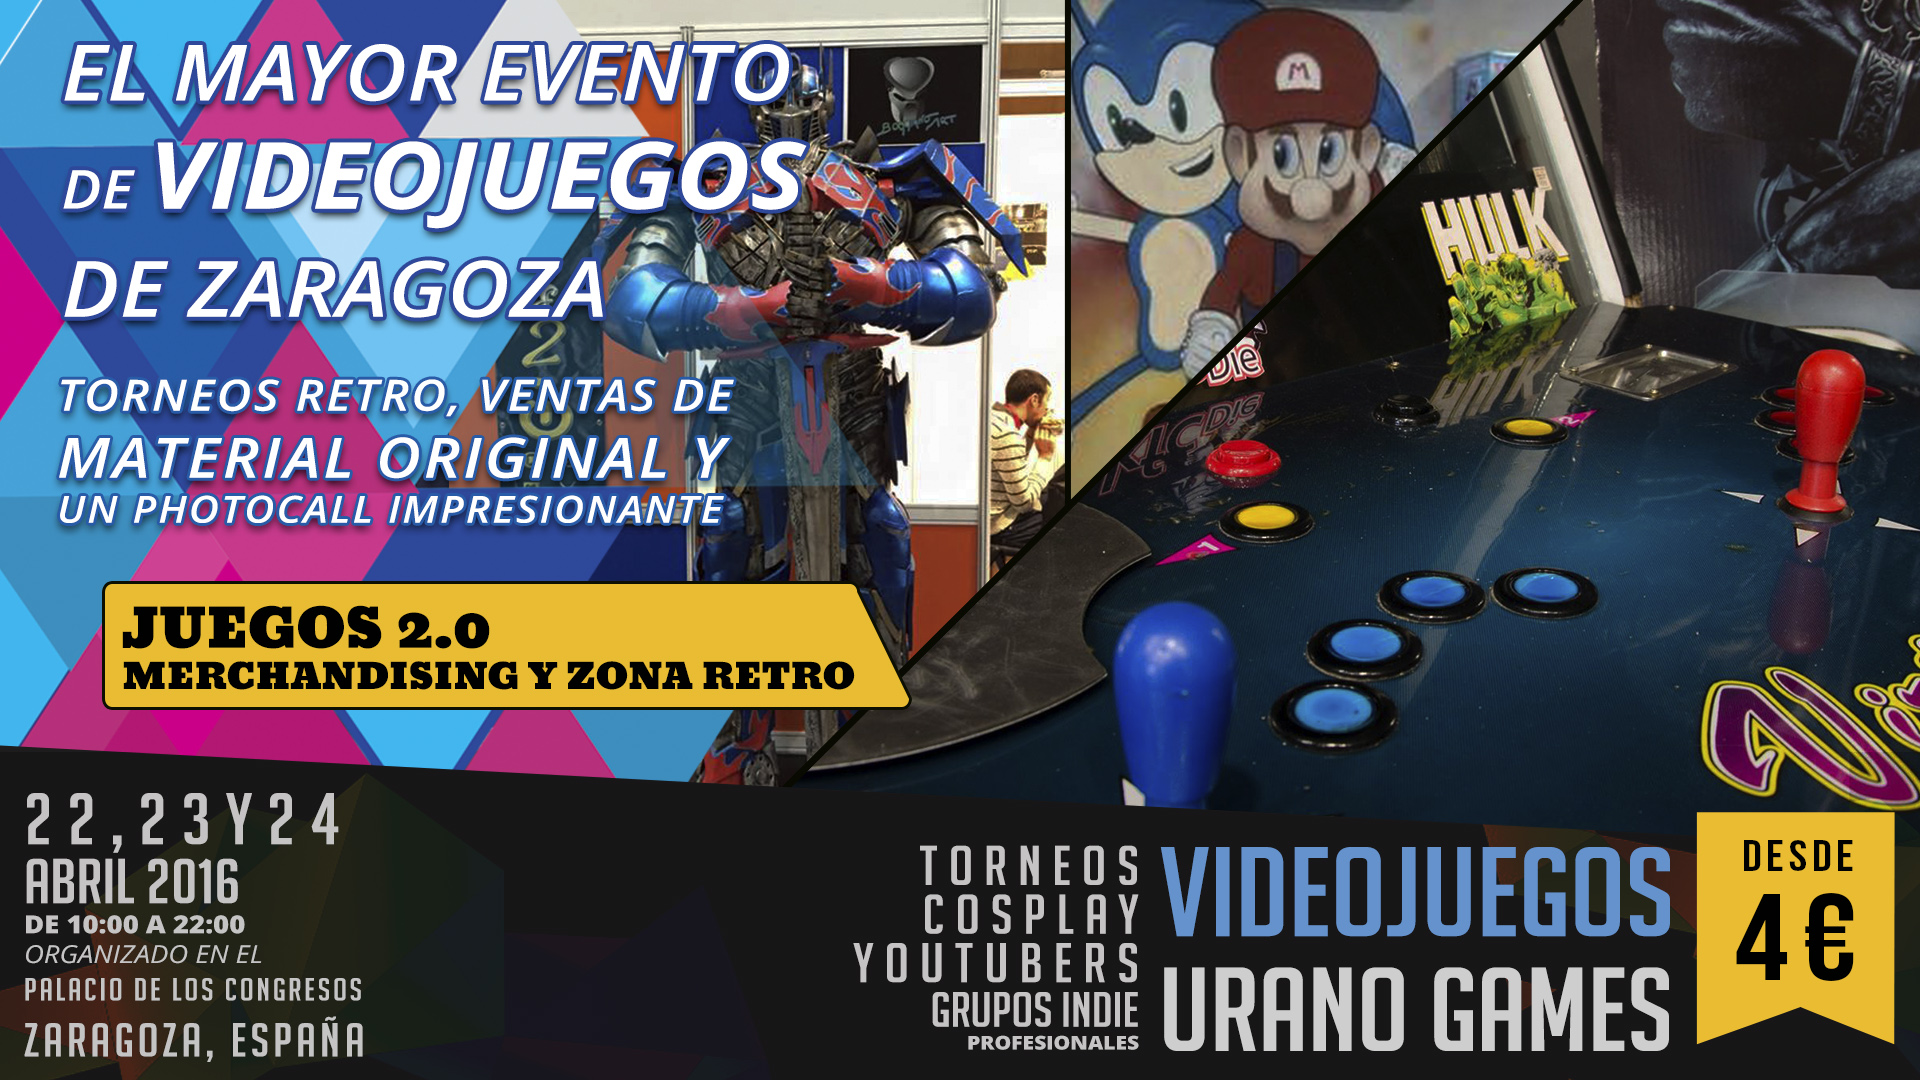 Wallpaper Urano Games Juegos 2 0 Zona Retro Urano Games